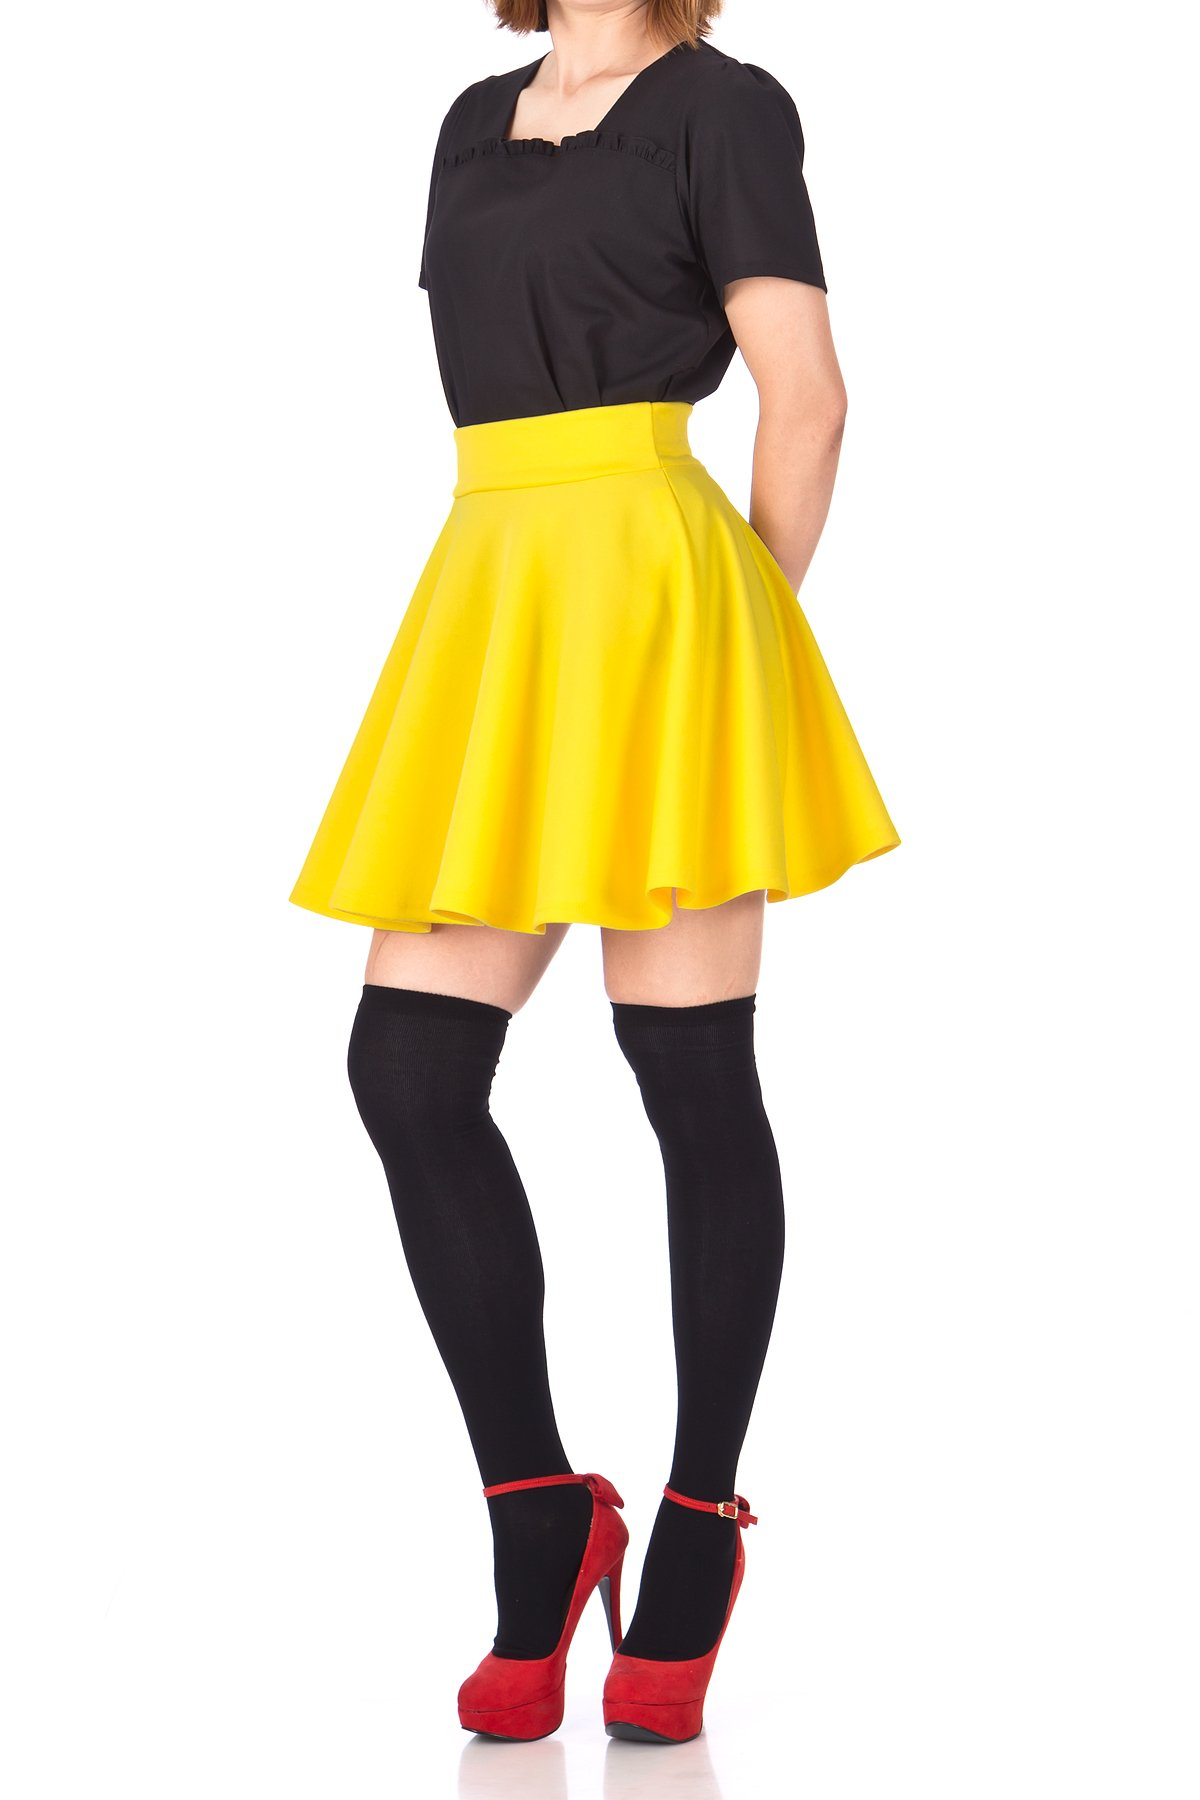 Fancy Retro High Waist A line Flowing Full Flared Swing Circle Skater Short Mini Skirt Yellow 04